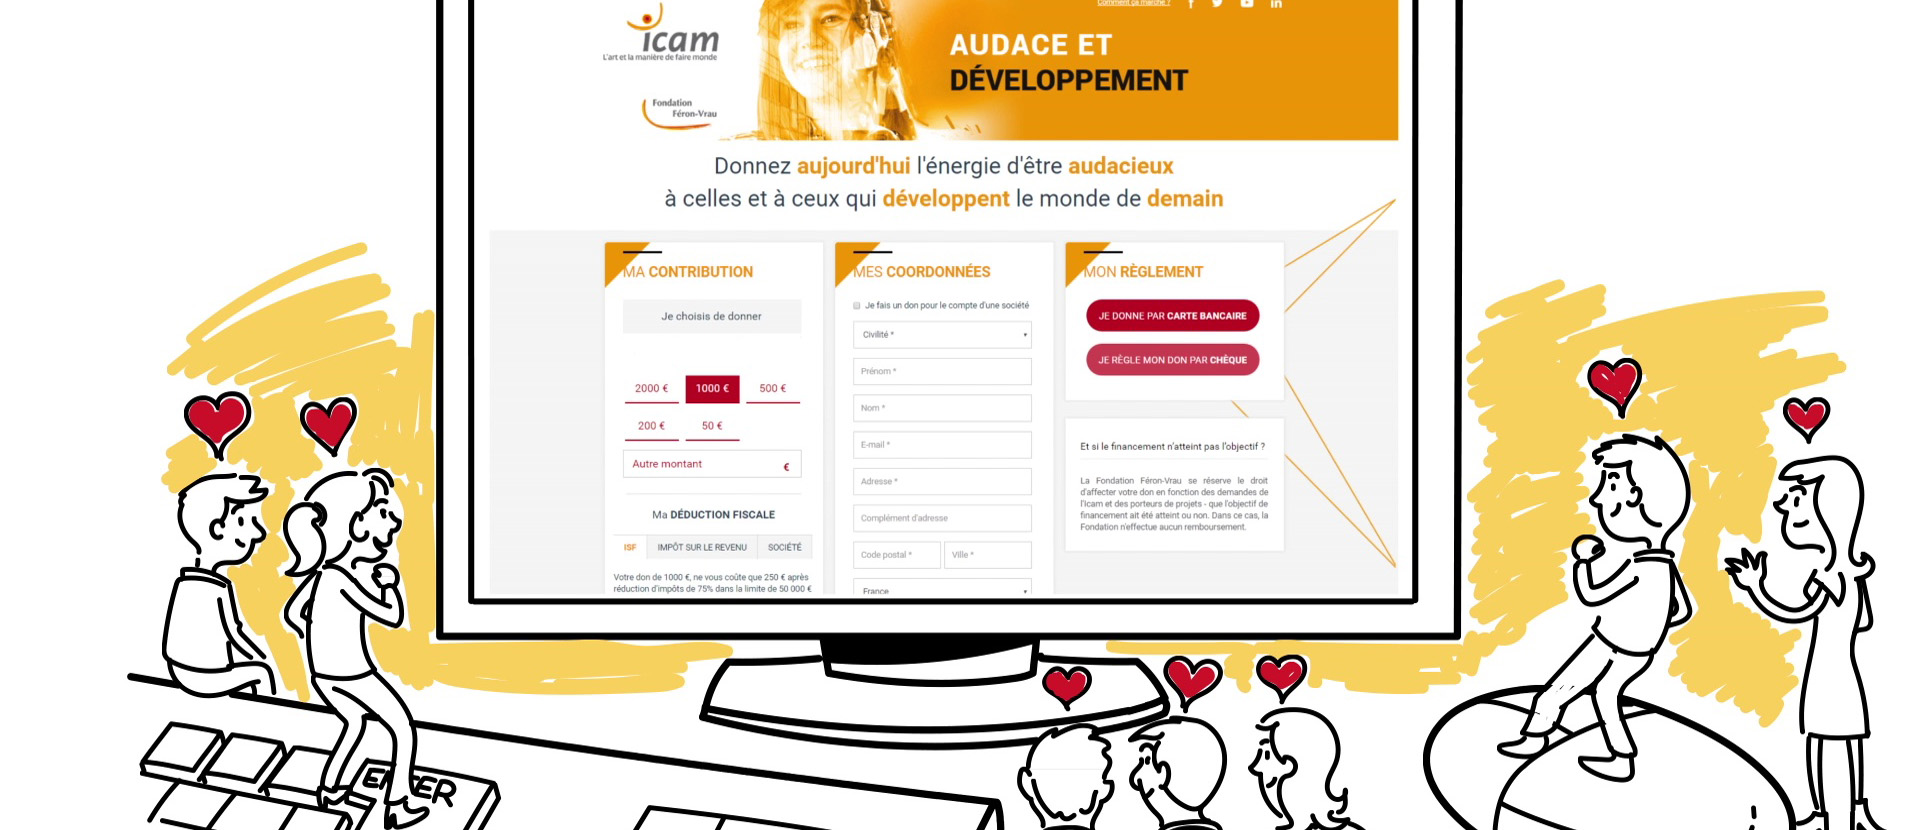 https://www.icam-audace-et-developpement.com/wp-content/uploads/2016/12/banner-fundraising.jpg